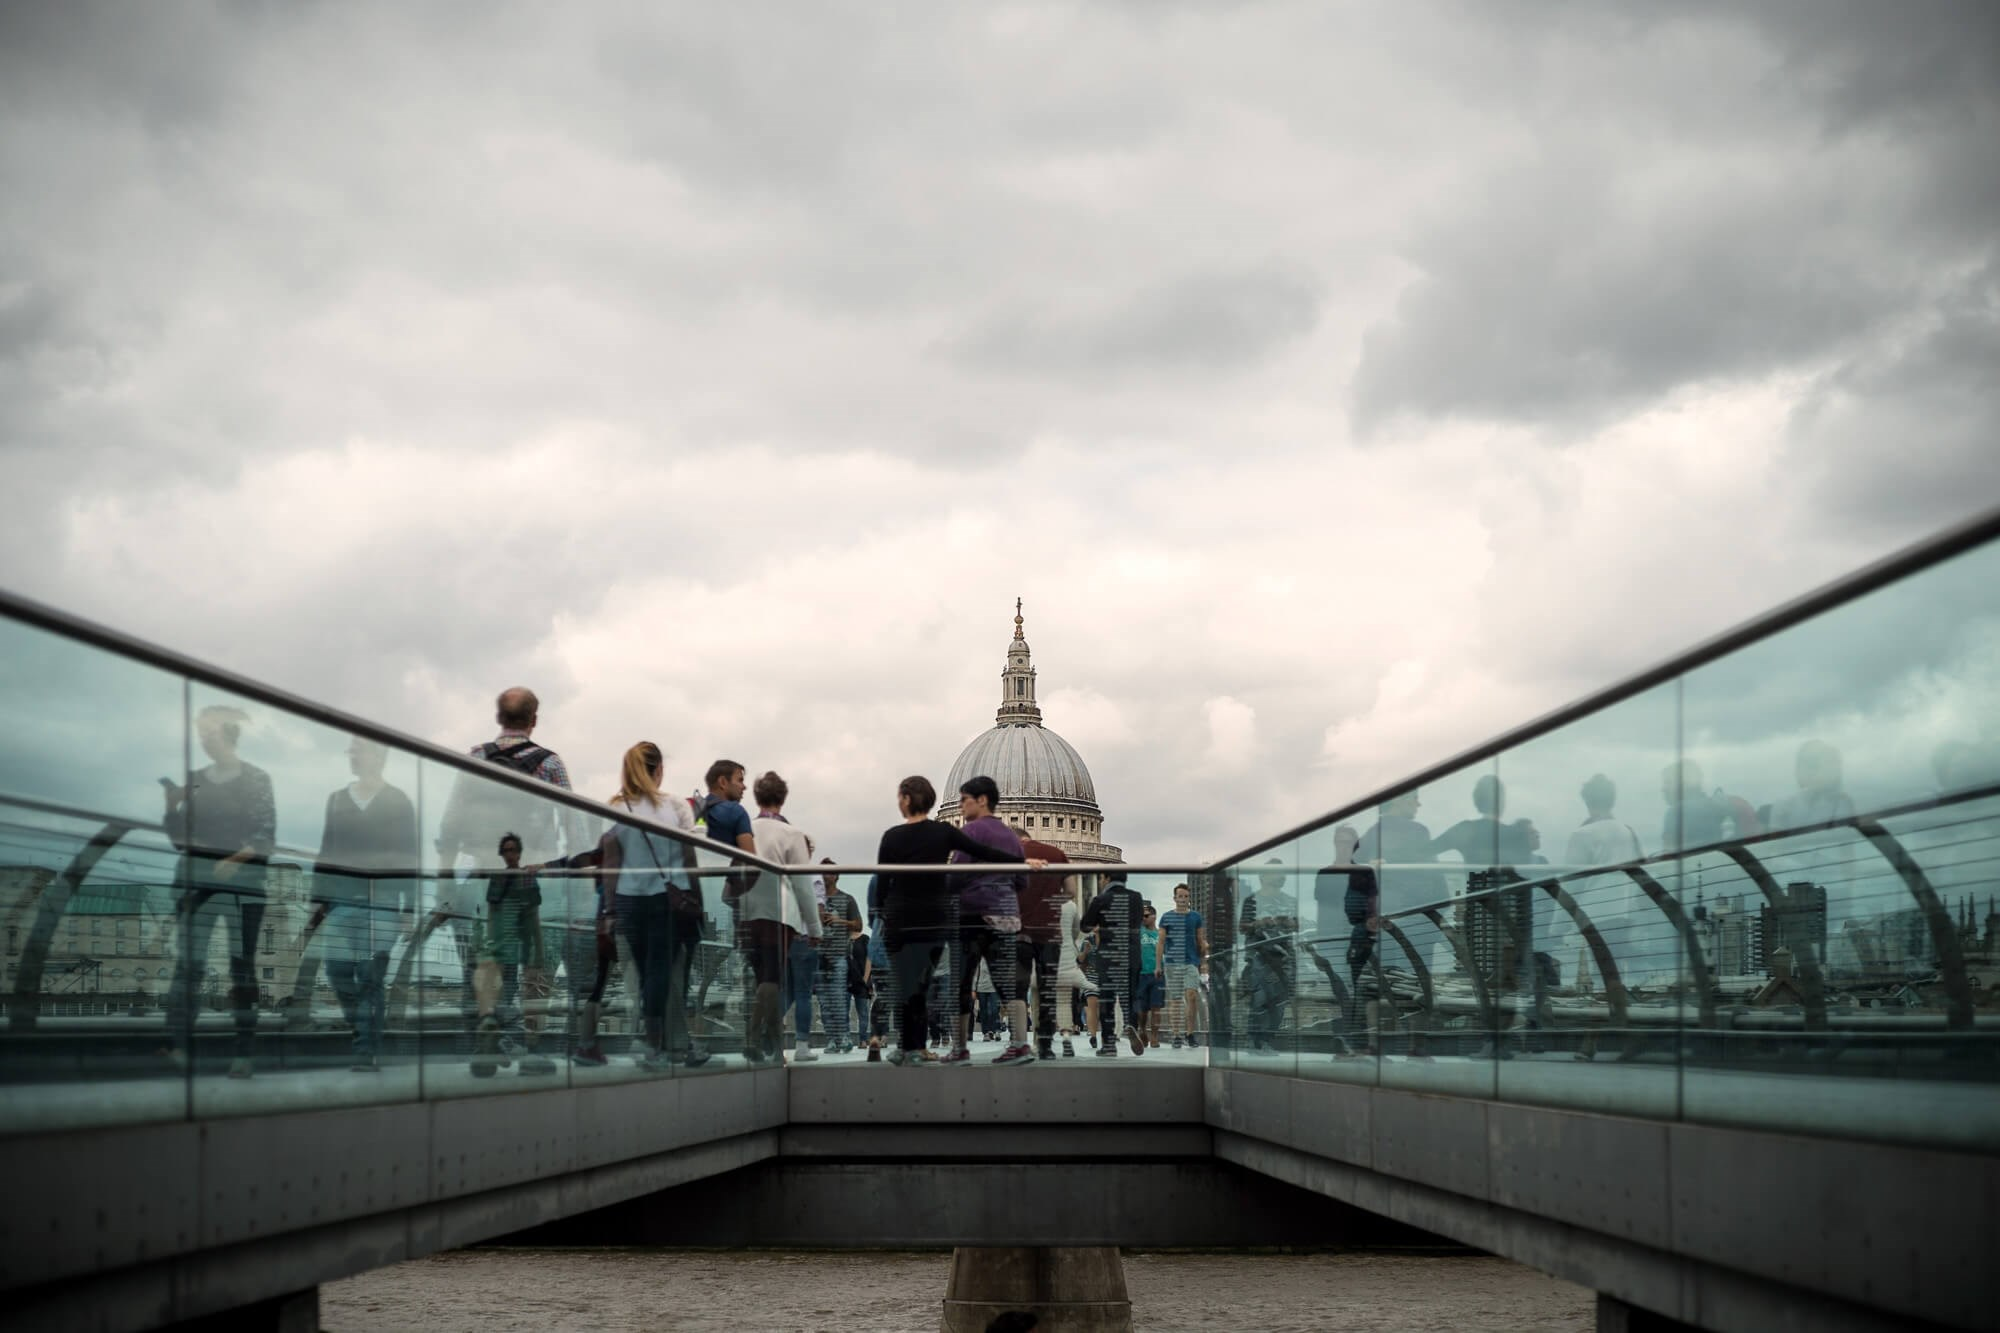 People on Millennium Bridge in London